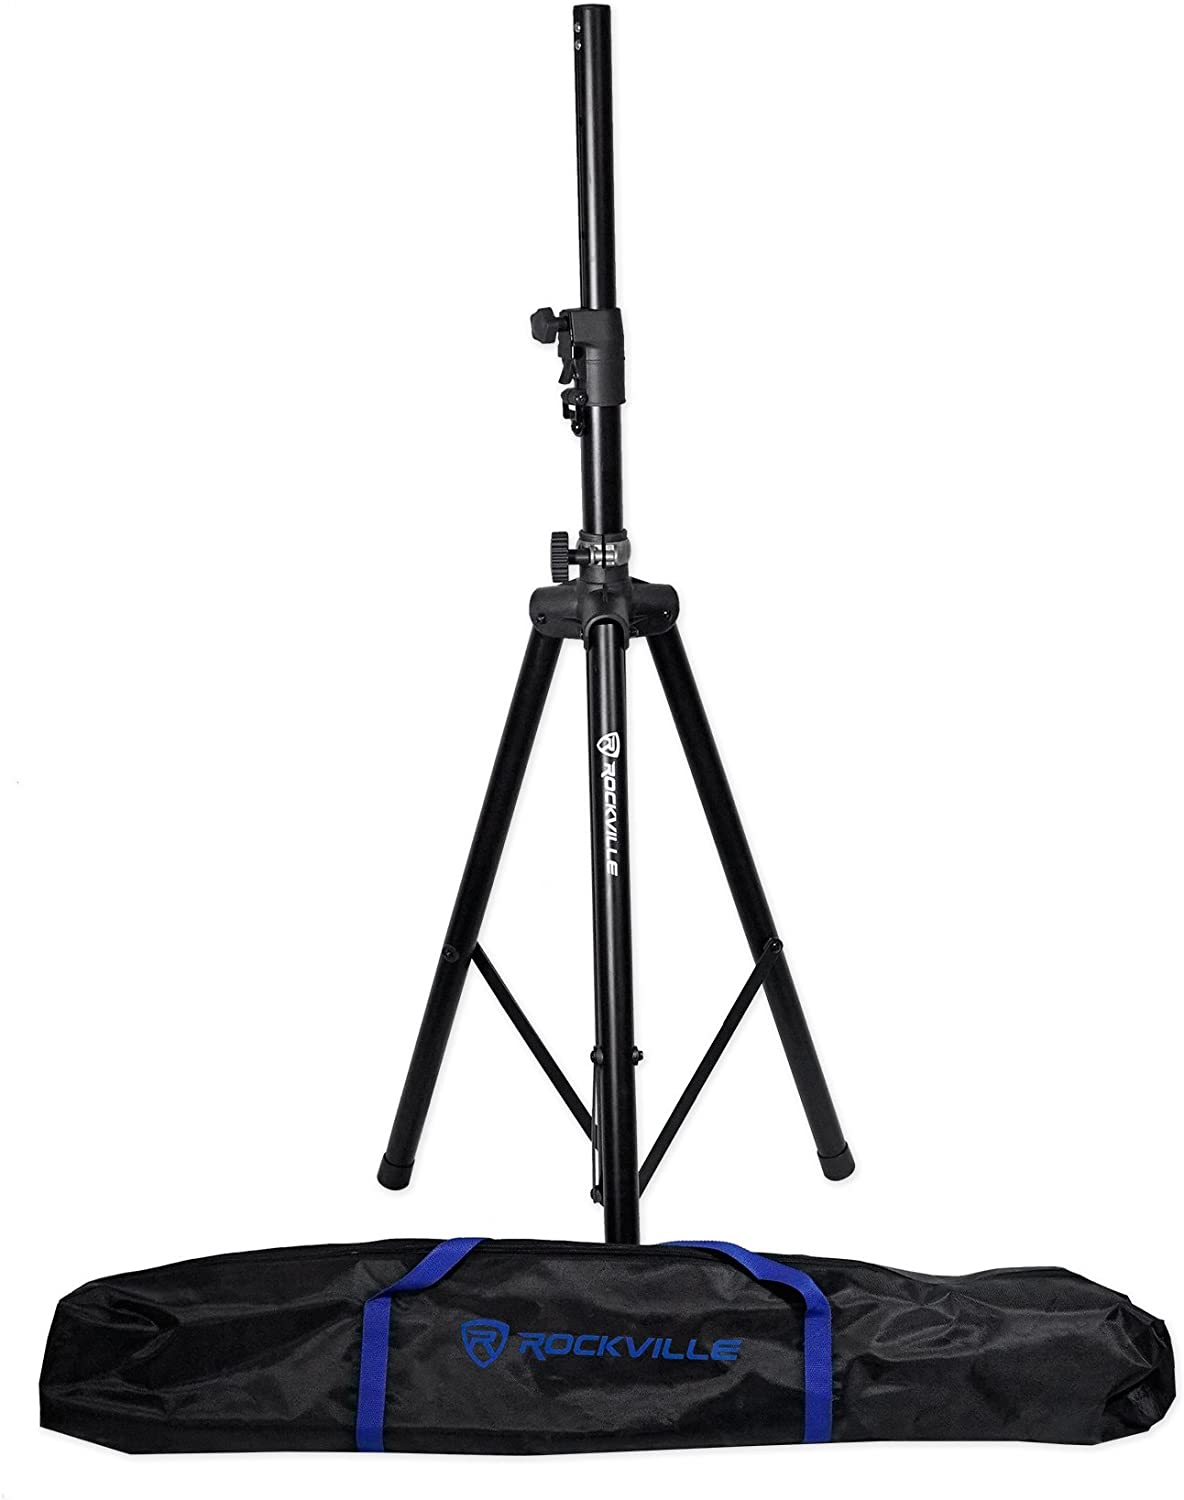 Rockville DJ PA Tripod Speaker Stand+Bag Hydraulic Auto Lift & Lowering RVSS4AB